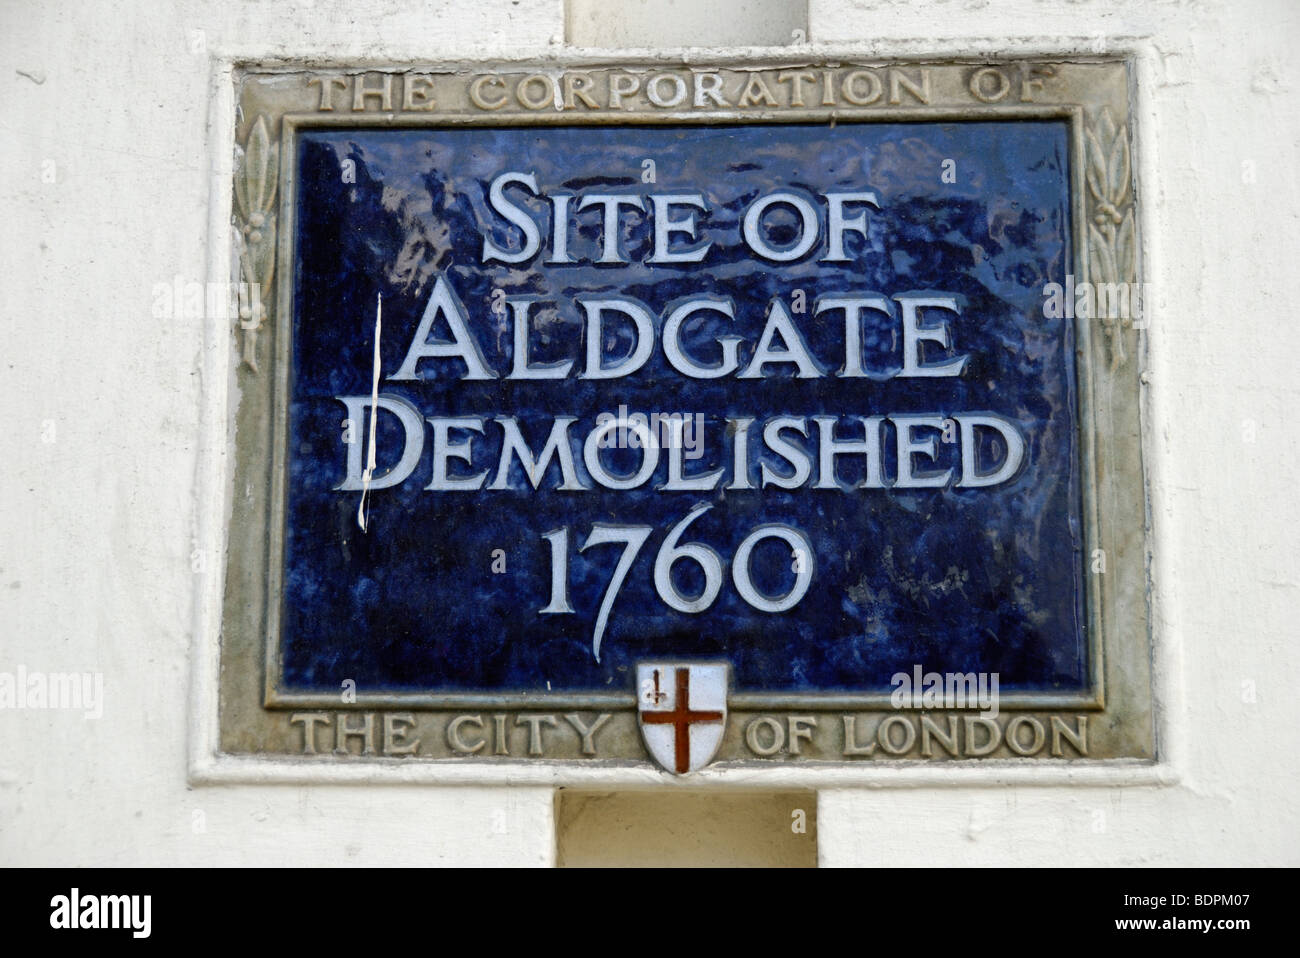 Blue plaque marking the site of the, now demolished, City of London gate called Aldgate. - Stock Image